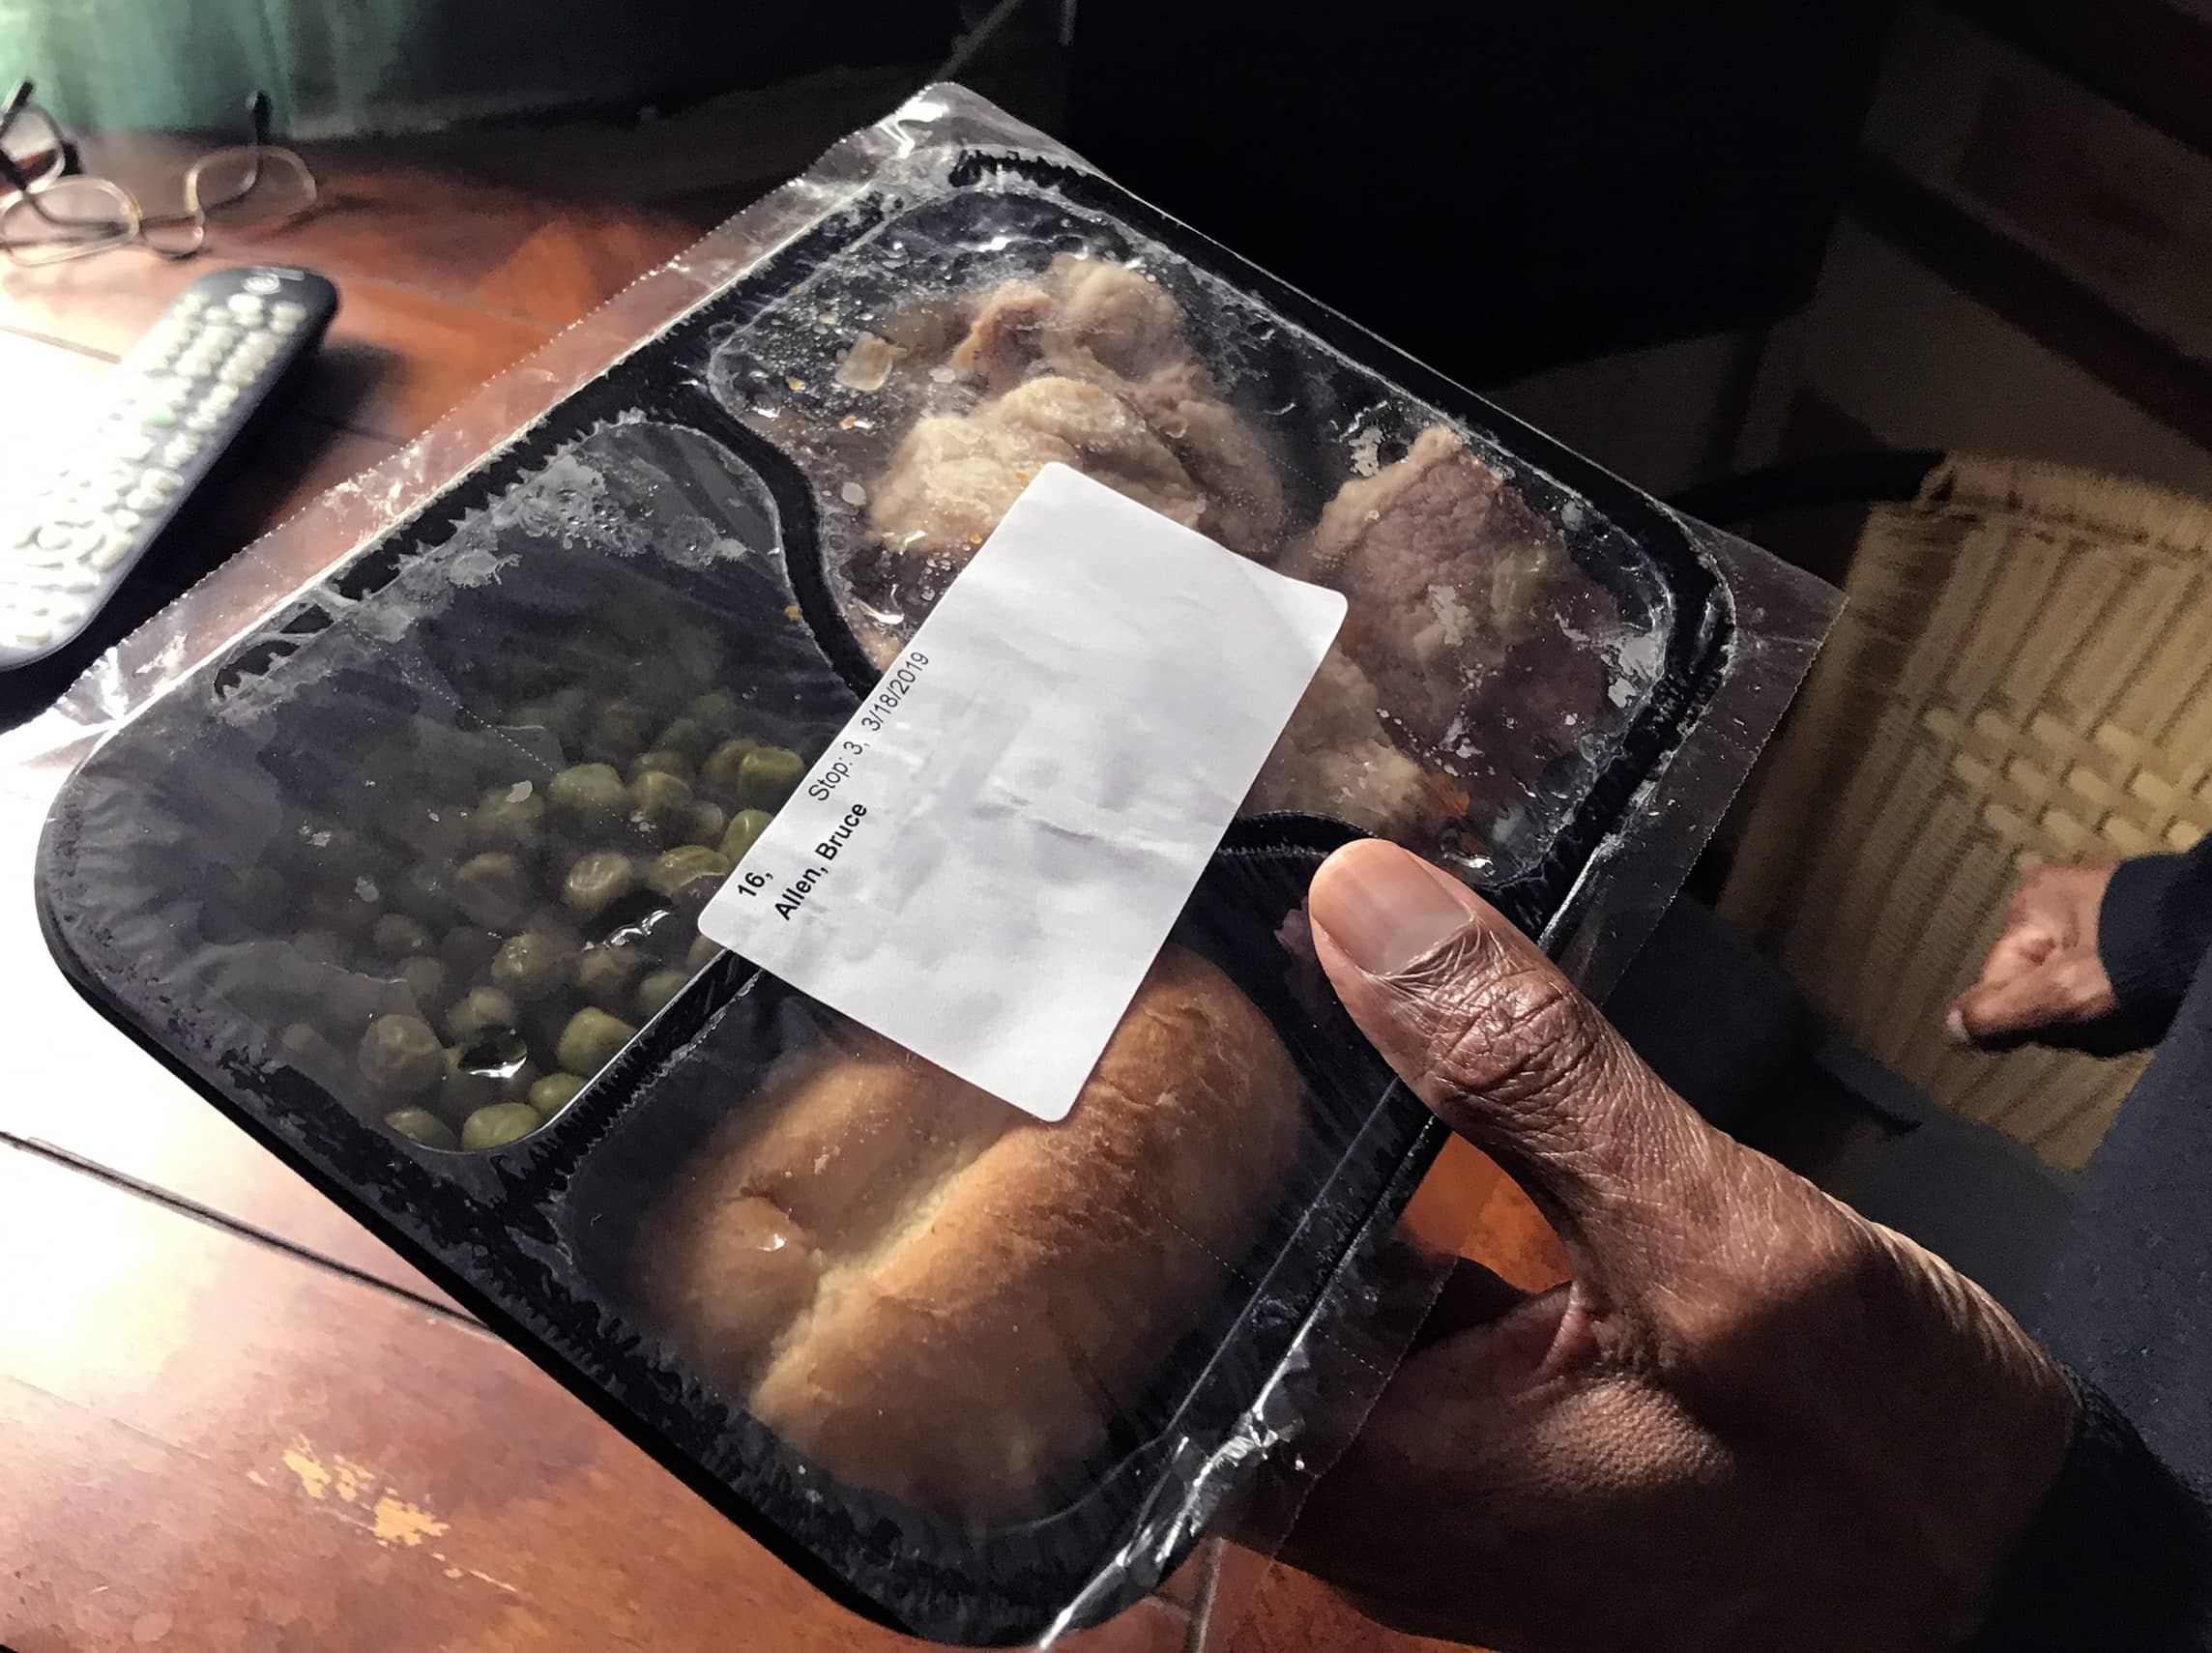 Bruce Allen holds one of his meals from Meals on Wheels. Sometimes, he'll mix the meal with ingredients he has in his cabinets to create a new dish.